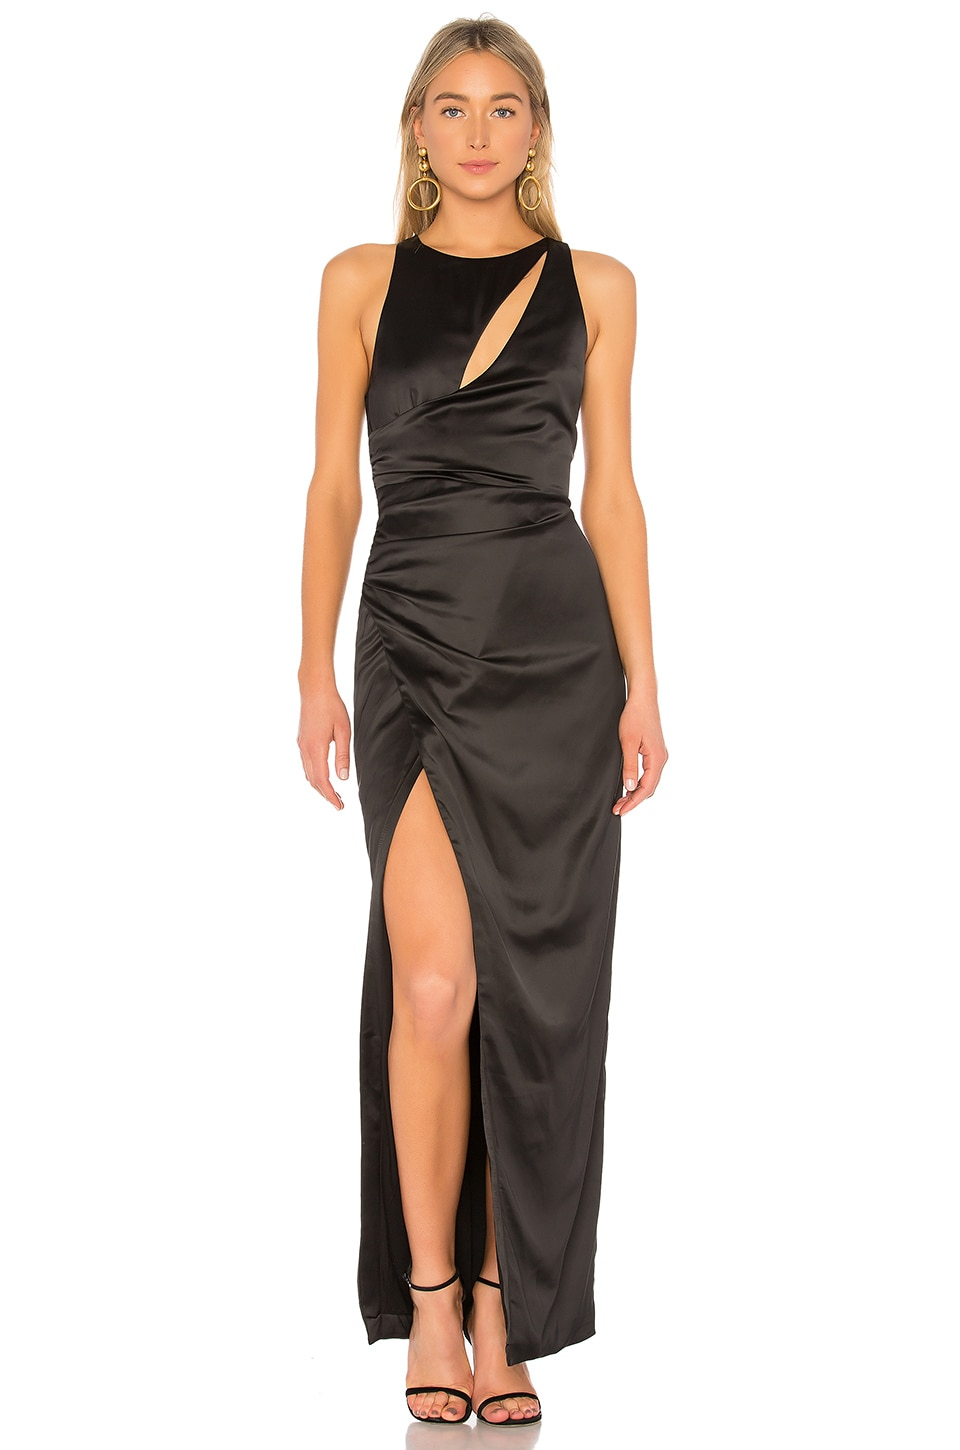 CYPRESS PARK GOWN